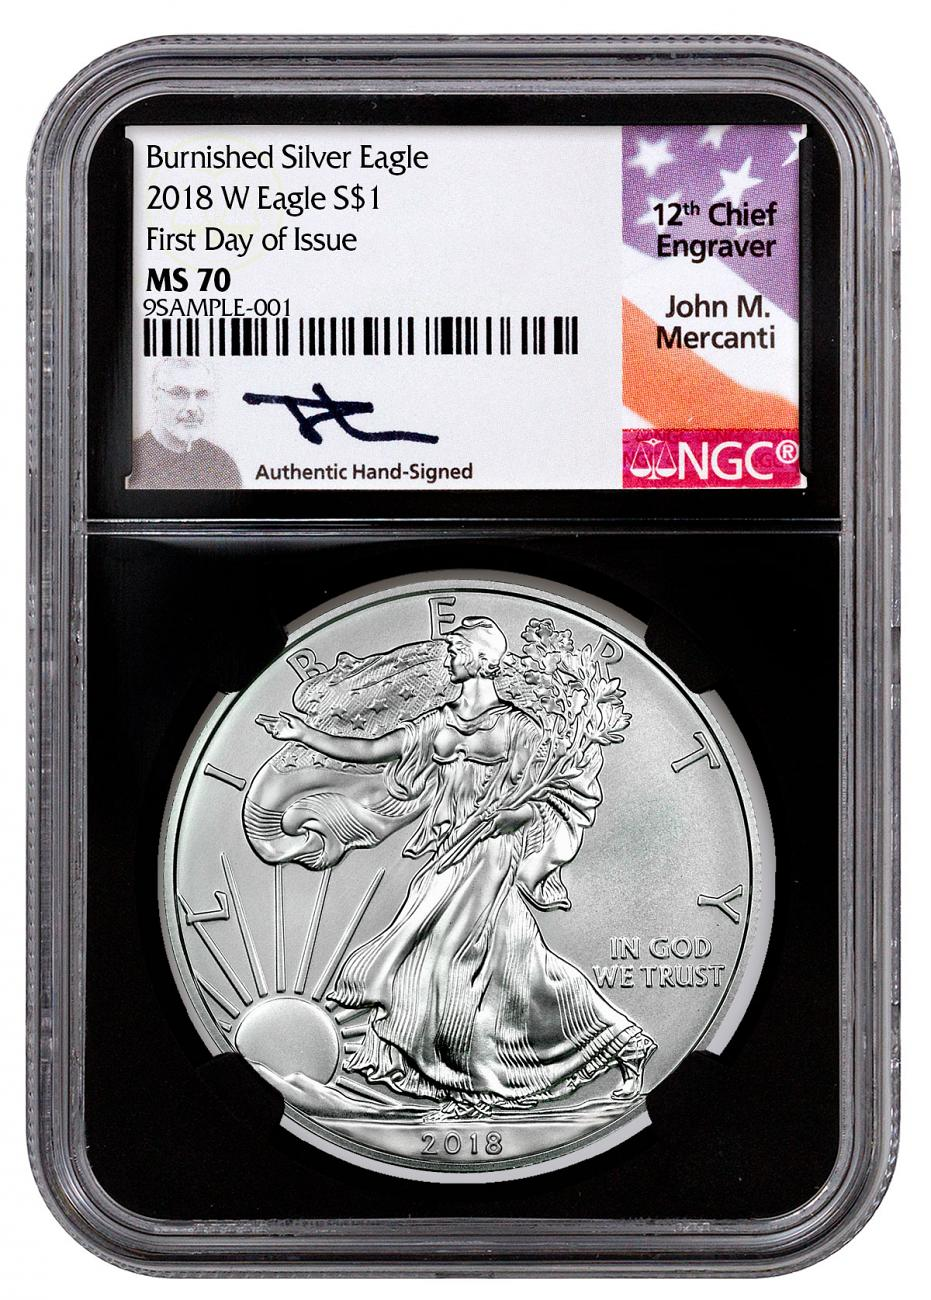 2018 W Burnished 1 American Silver Eagle Ngc Ms70 Liberty Coin Act Er Label